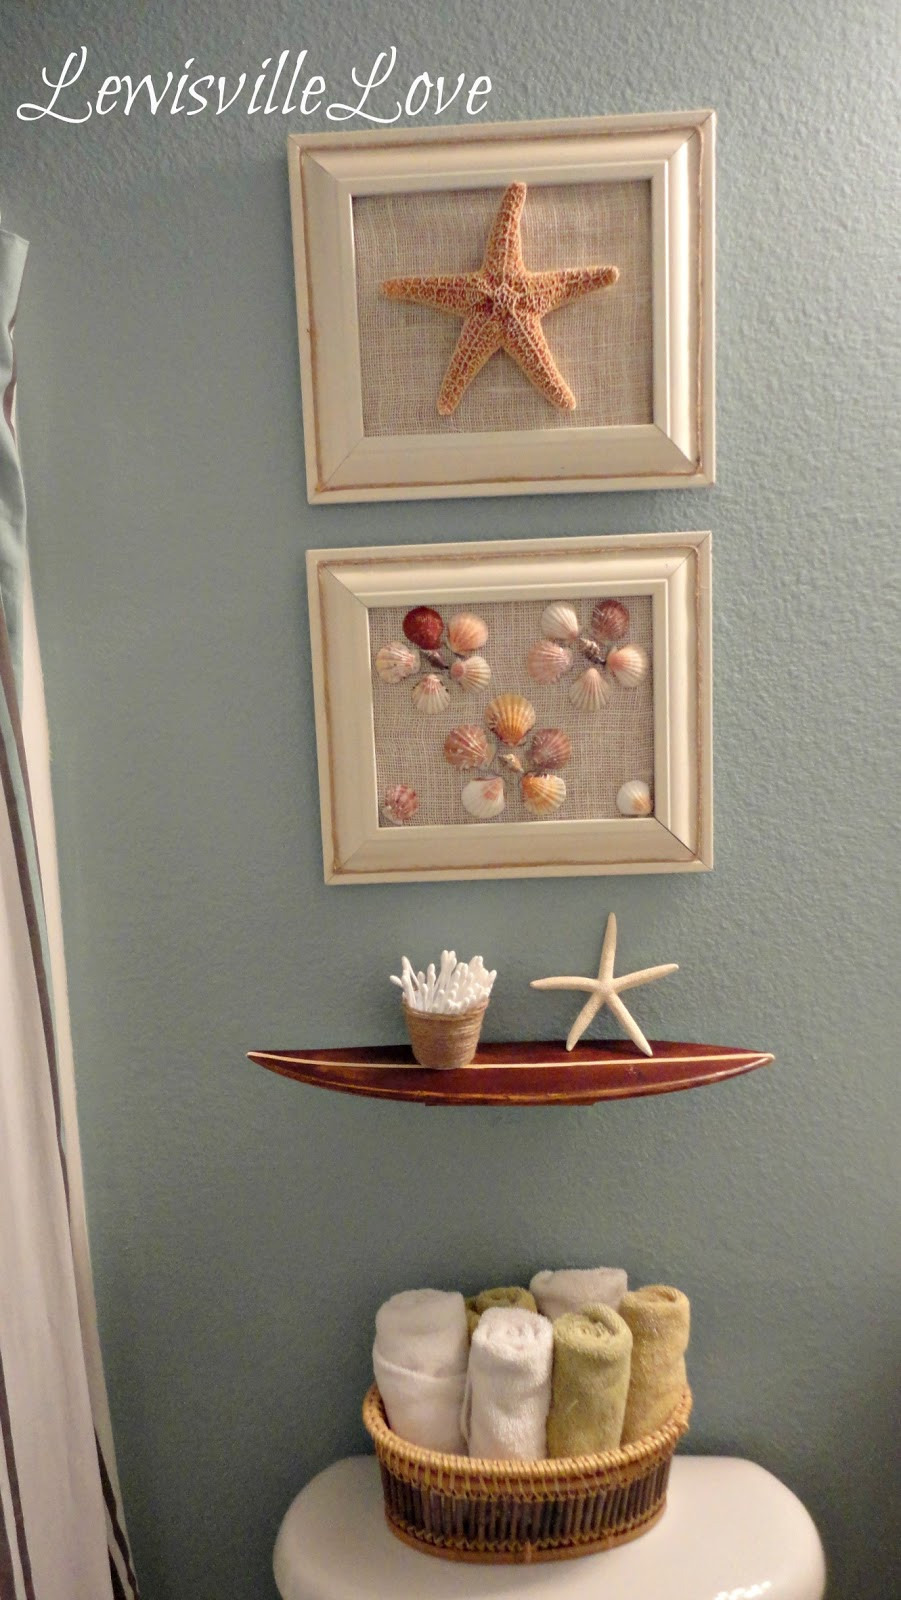 beach bathroom ideas beautiful beach bathroom ideas to your bathroom transformed of beach bathroom ideas